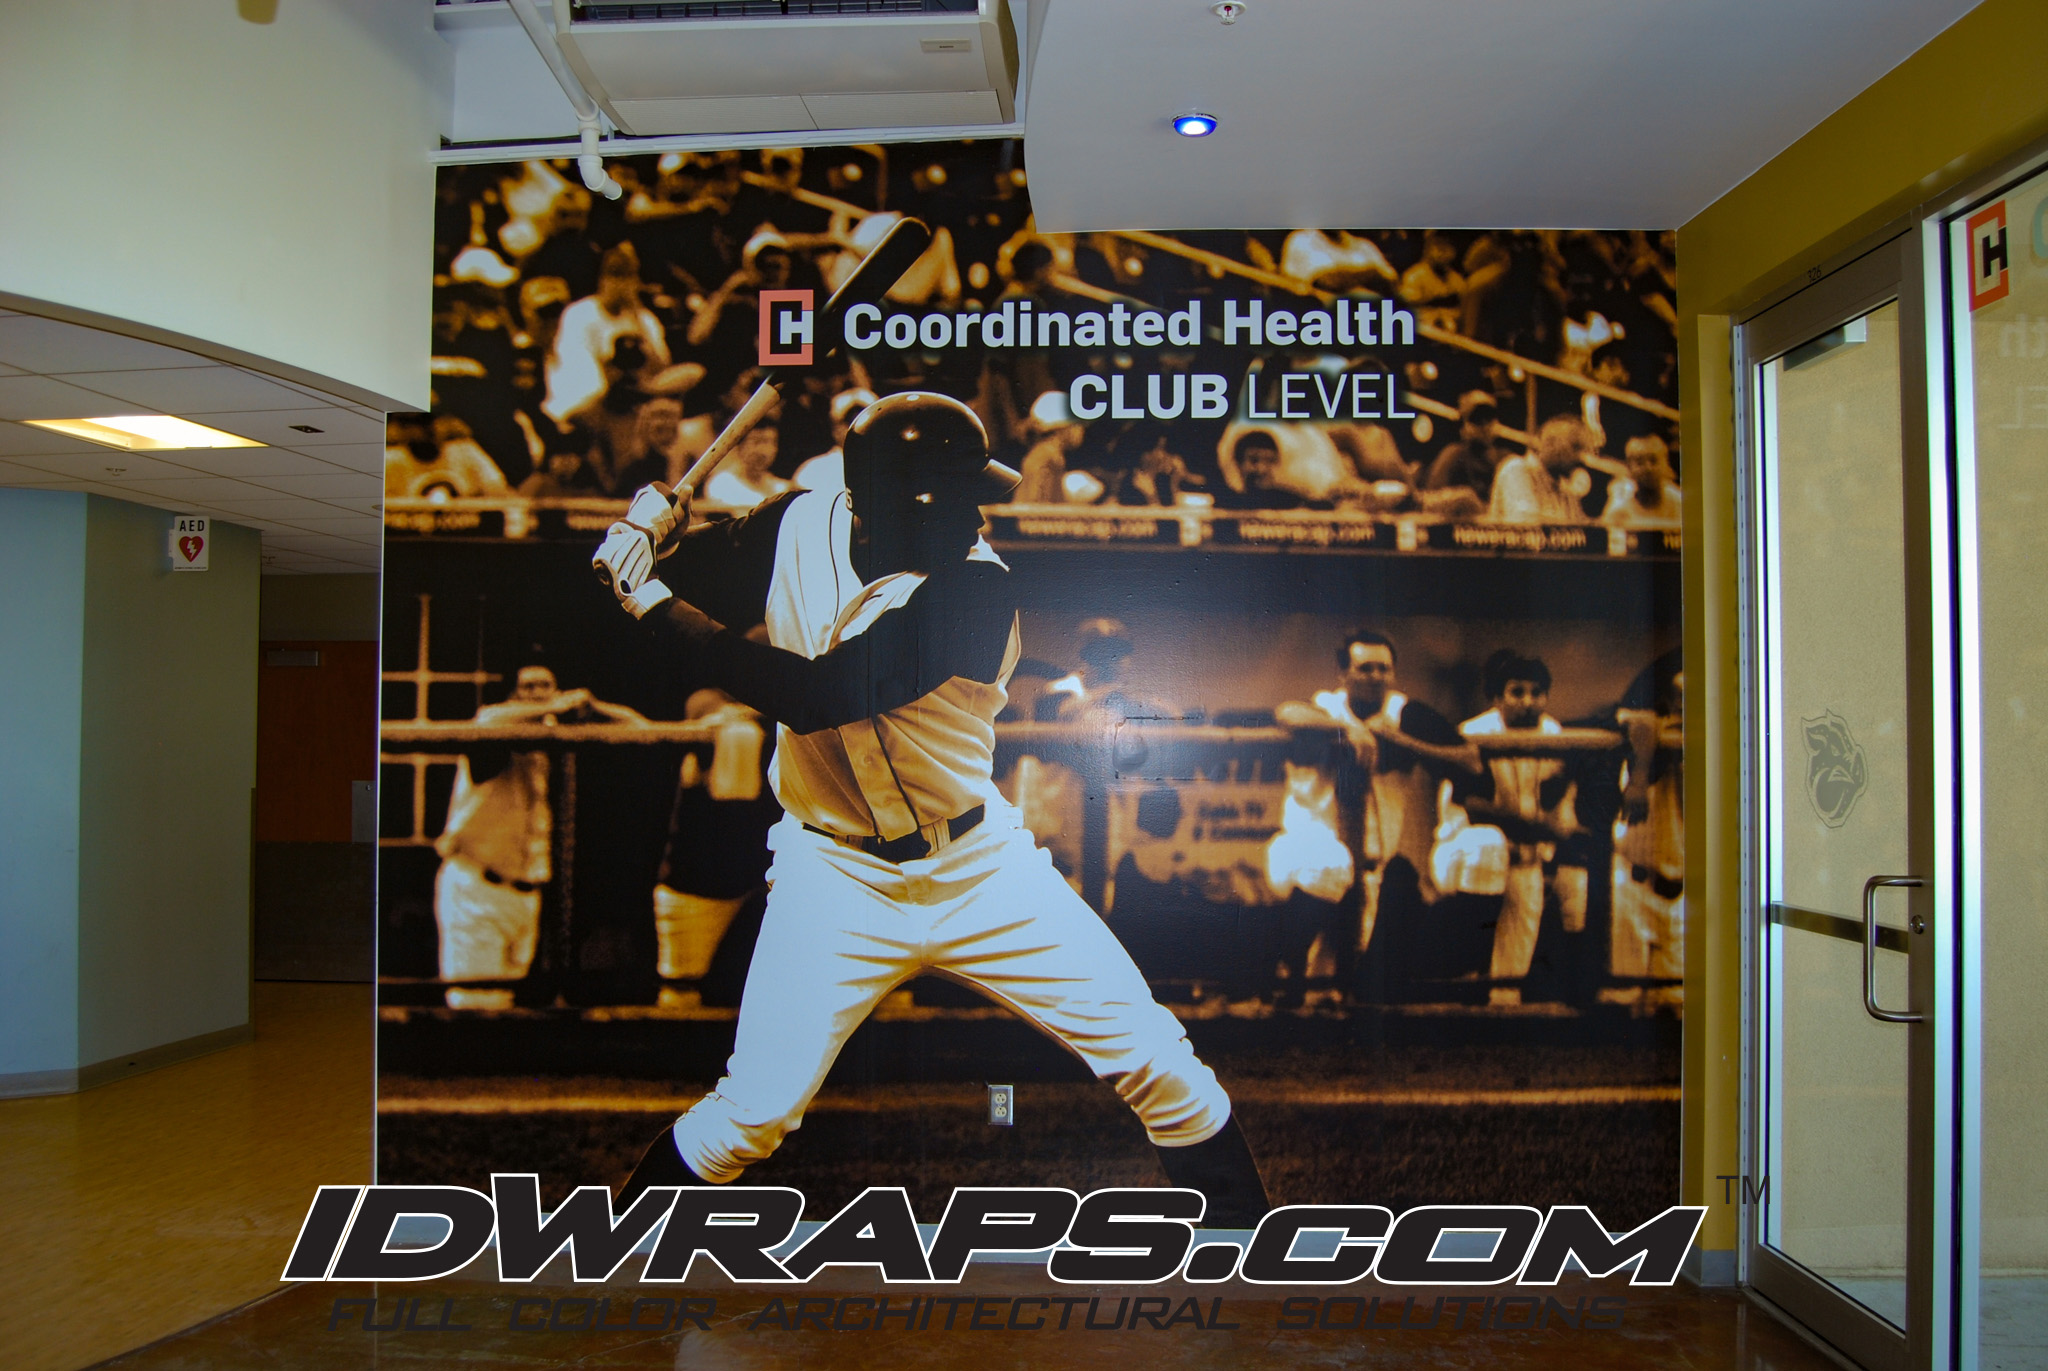 Lehigh Valley Iron Pigs Coordinated Health Club 3M Vinyl Wall Graphic Installation